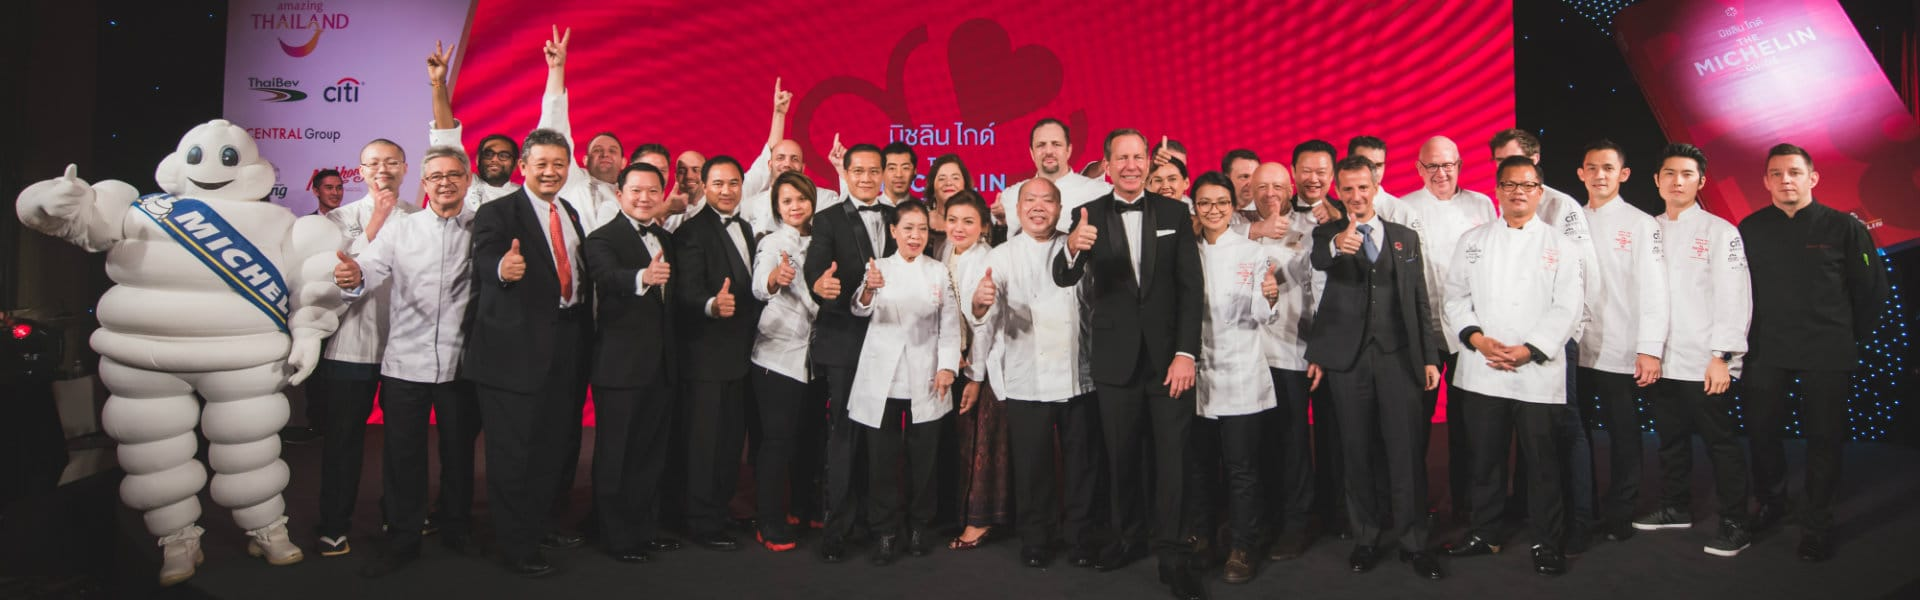 Recap The Michelin Guide Bangkok 2018 Gala Celebration